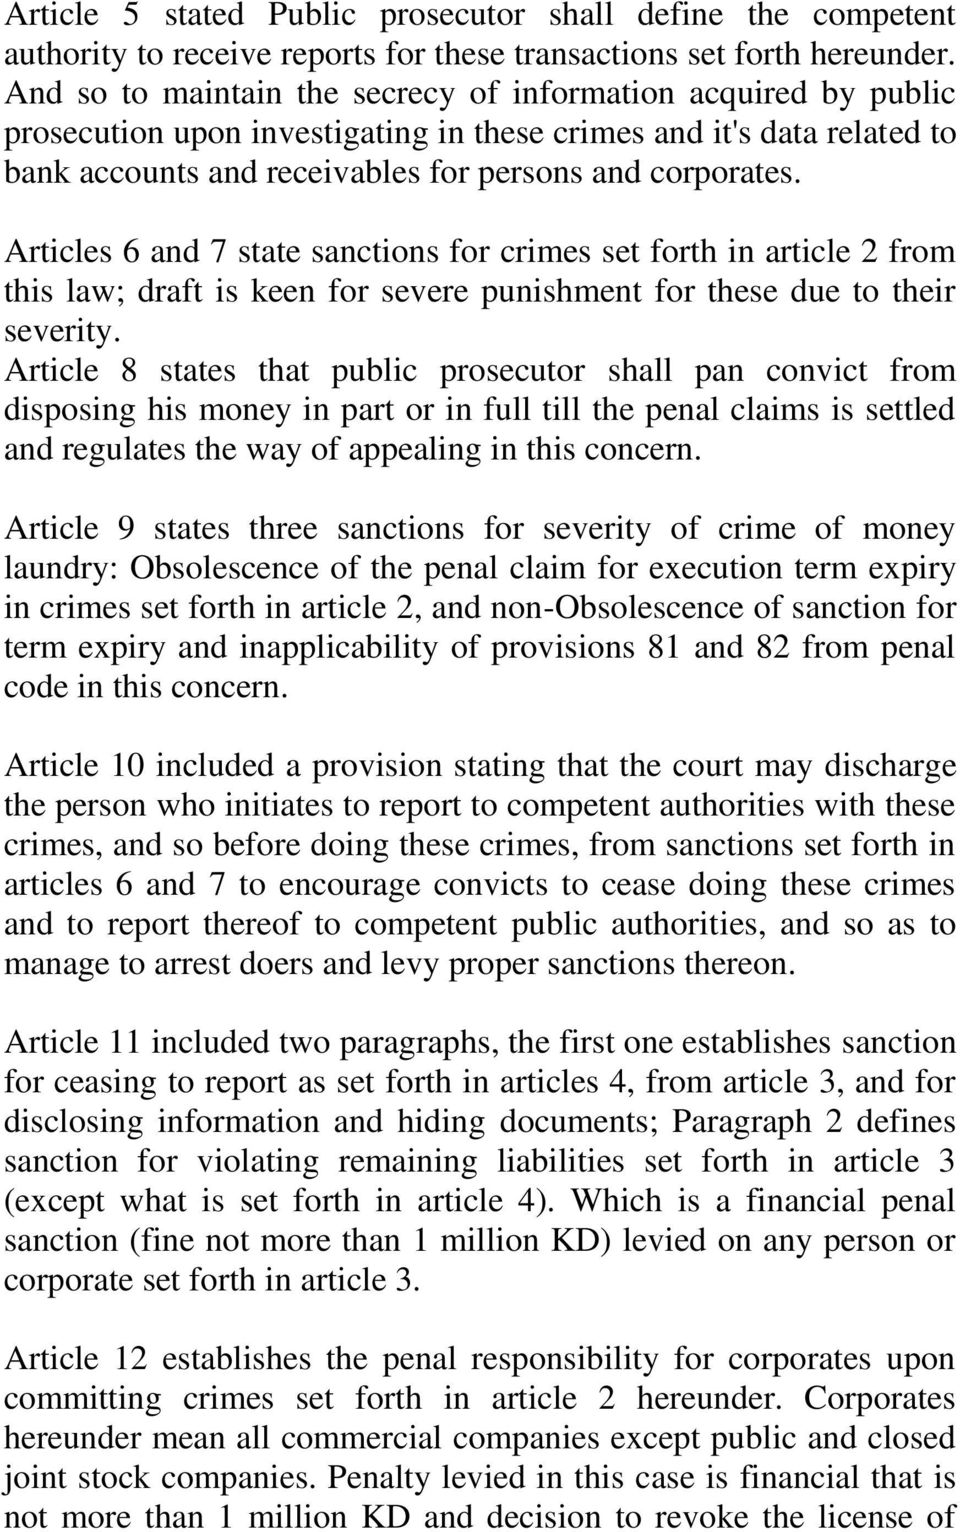 Articles 6 and 7 state sanctions for crimes set forth in article 2 from this law; draft is keen for severe punishment for these due to their severity.